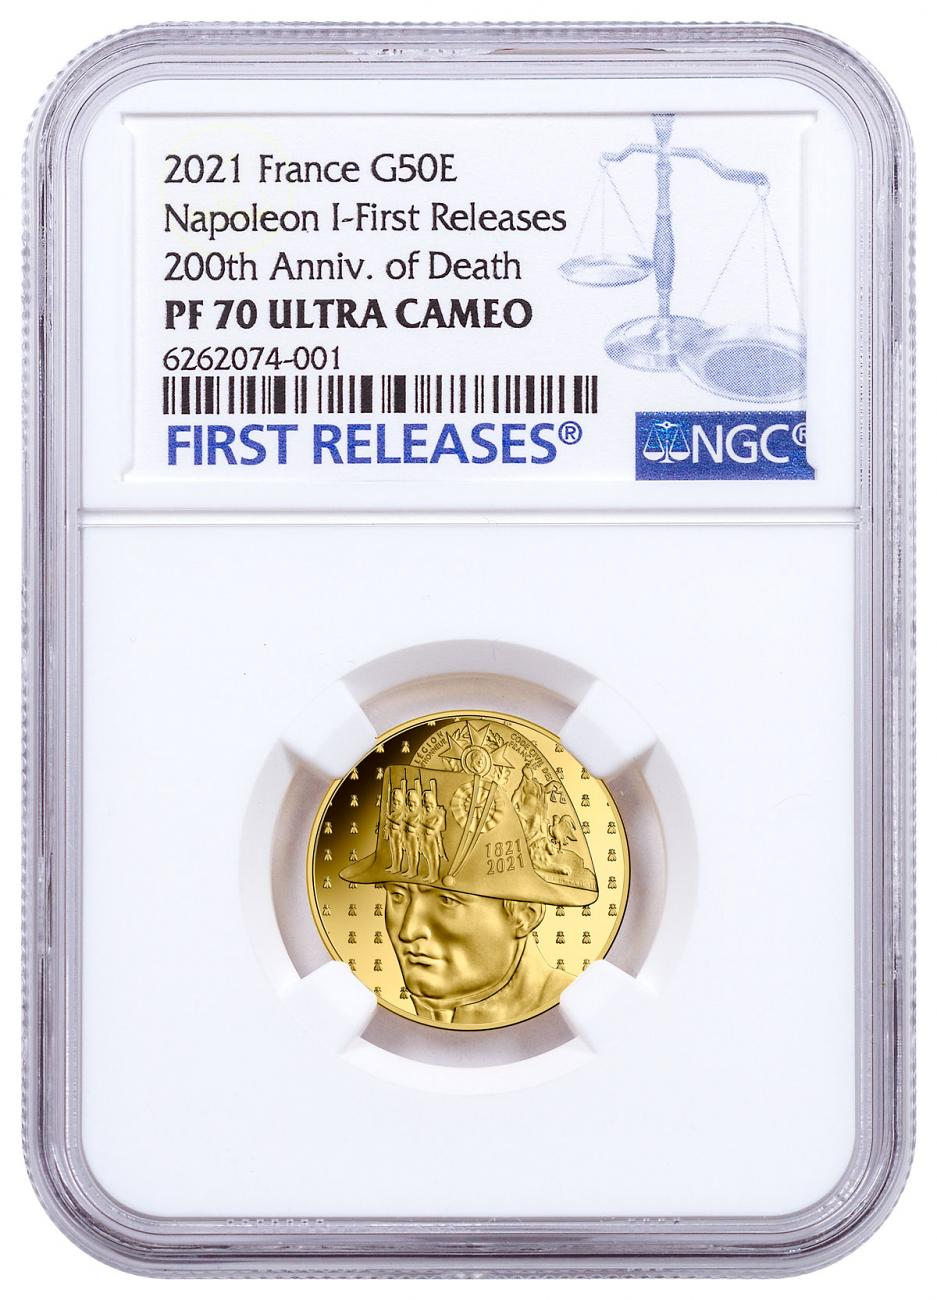 2021 France Napoleon Bonaparte - 200th Anniversary of Death 1/4 oz Gold Proof €50 Coin NGC PF70 UC FR